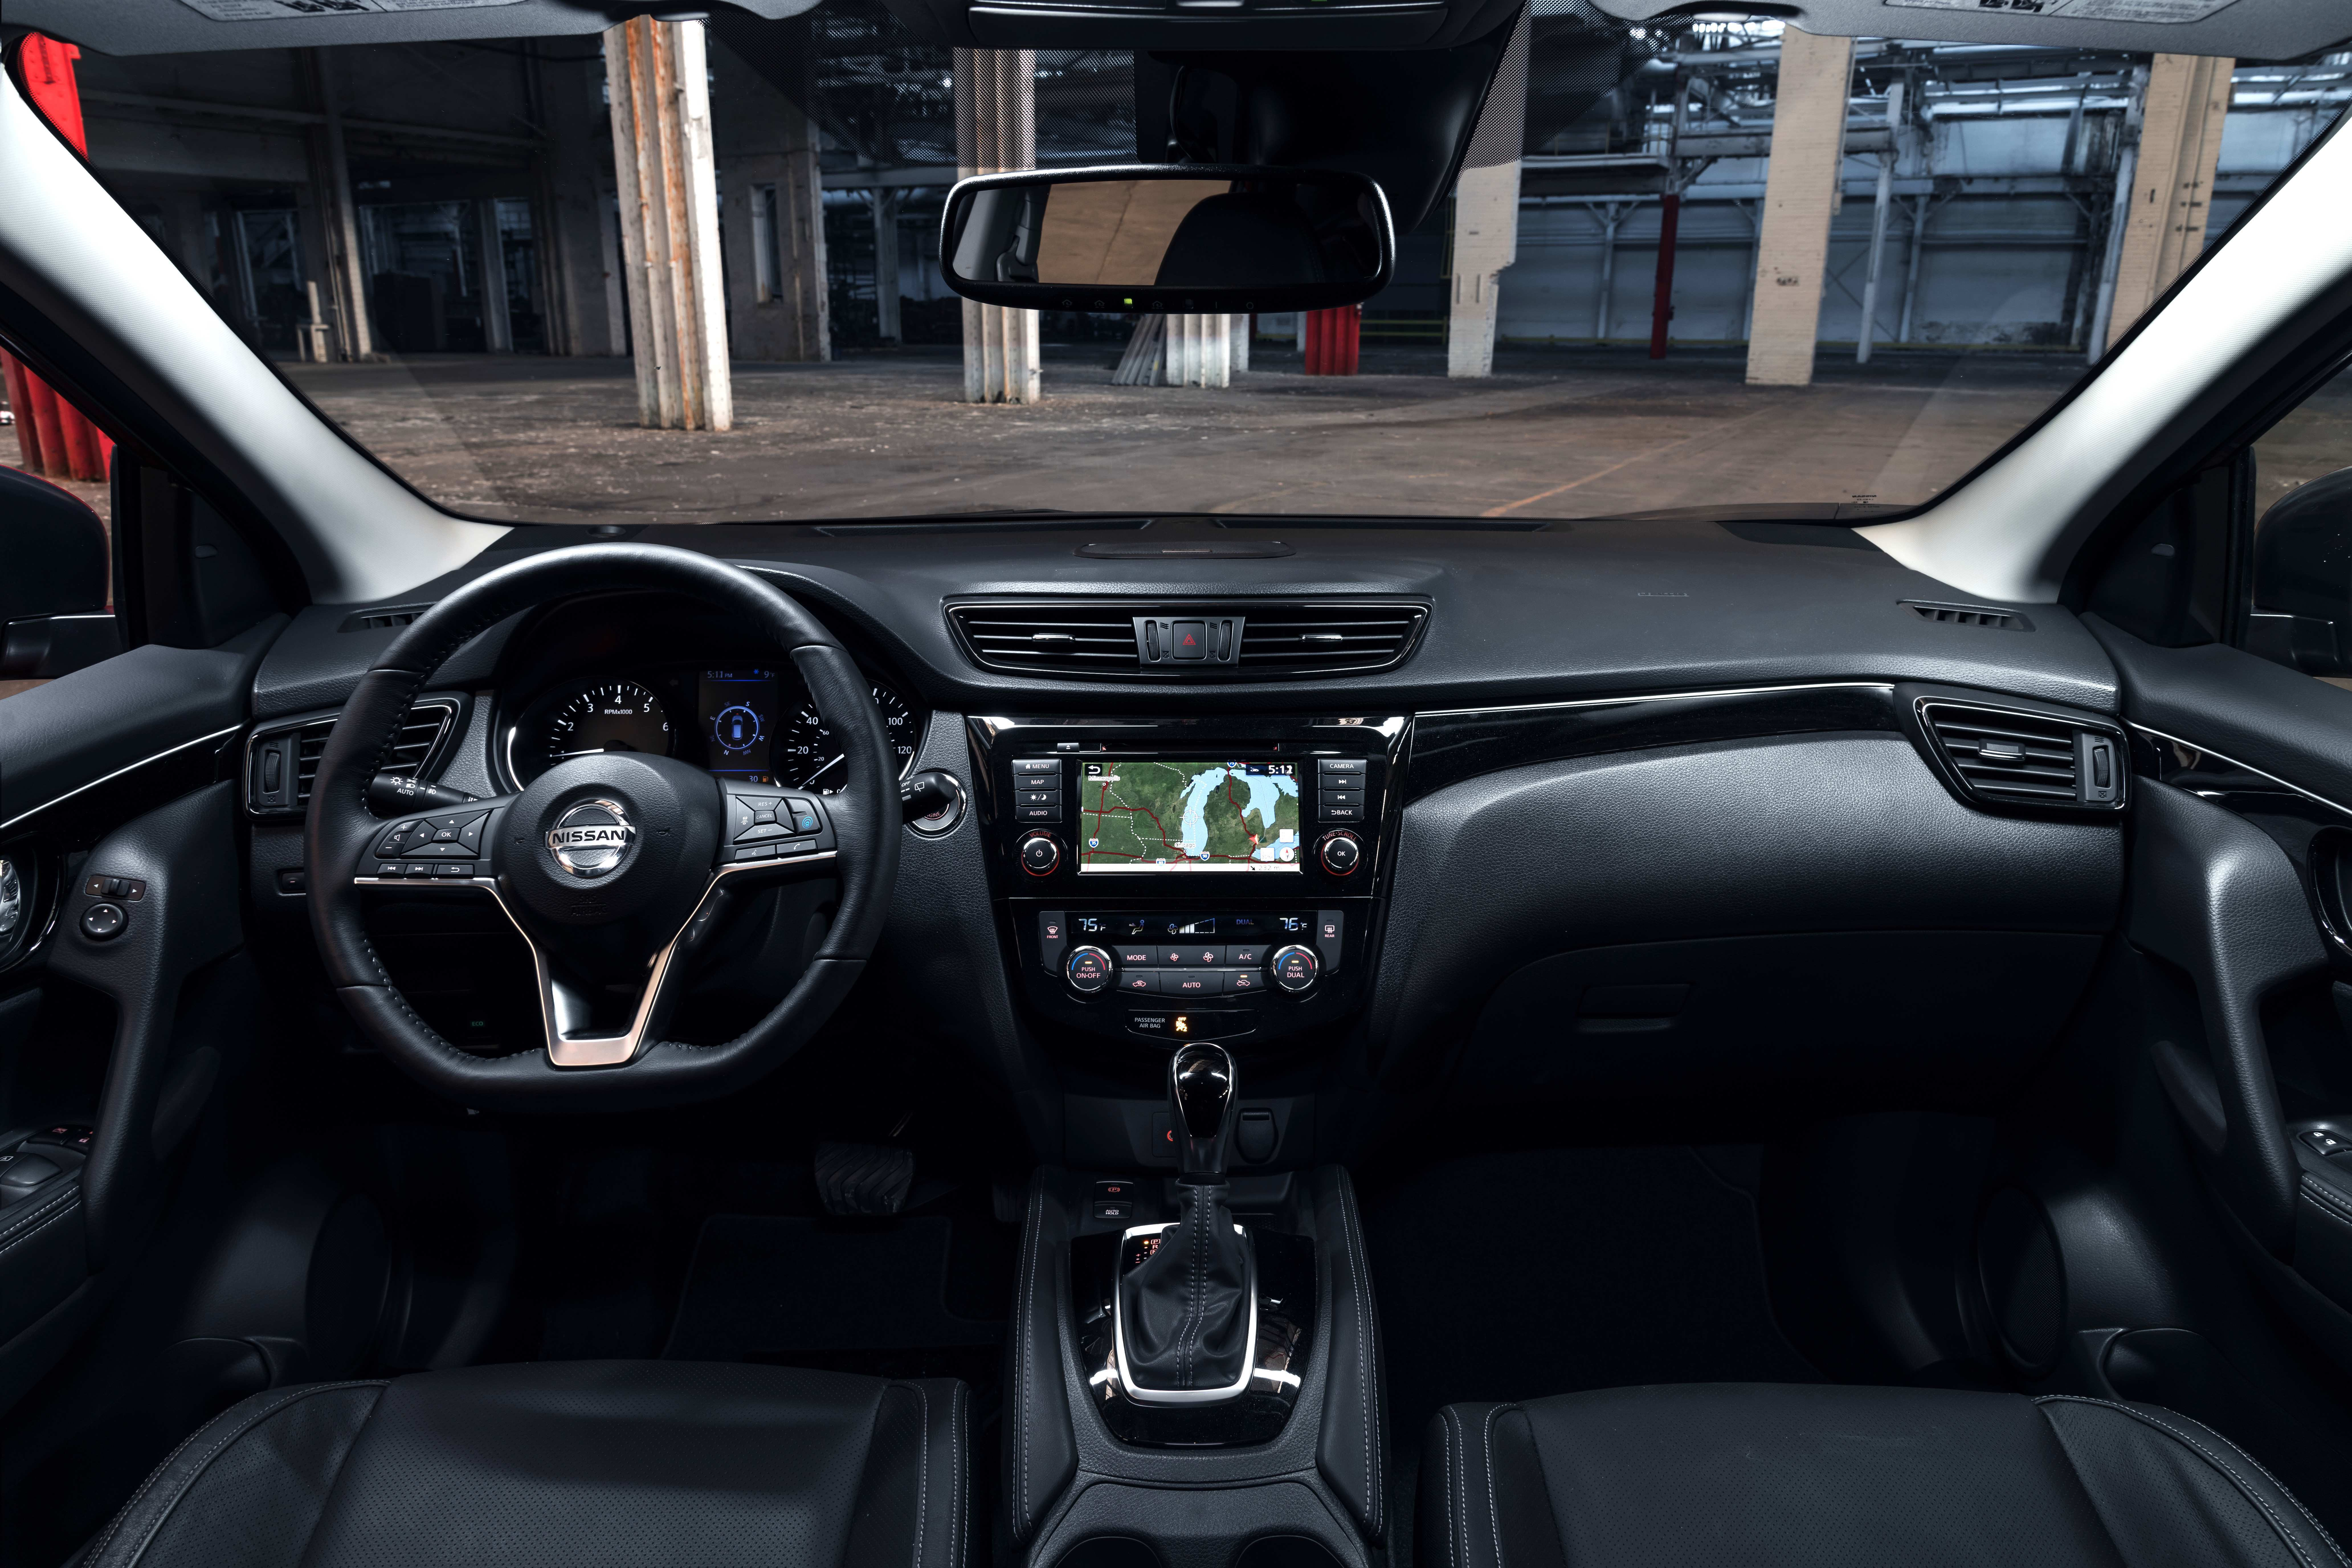 89 New Nissan Rogue 2020 Interior Specs and Review by Nissan Rogue 2020 Interior